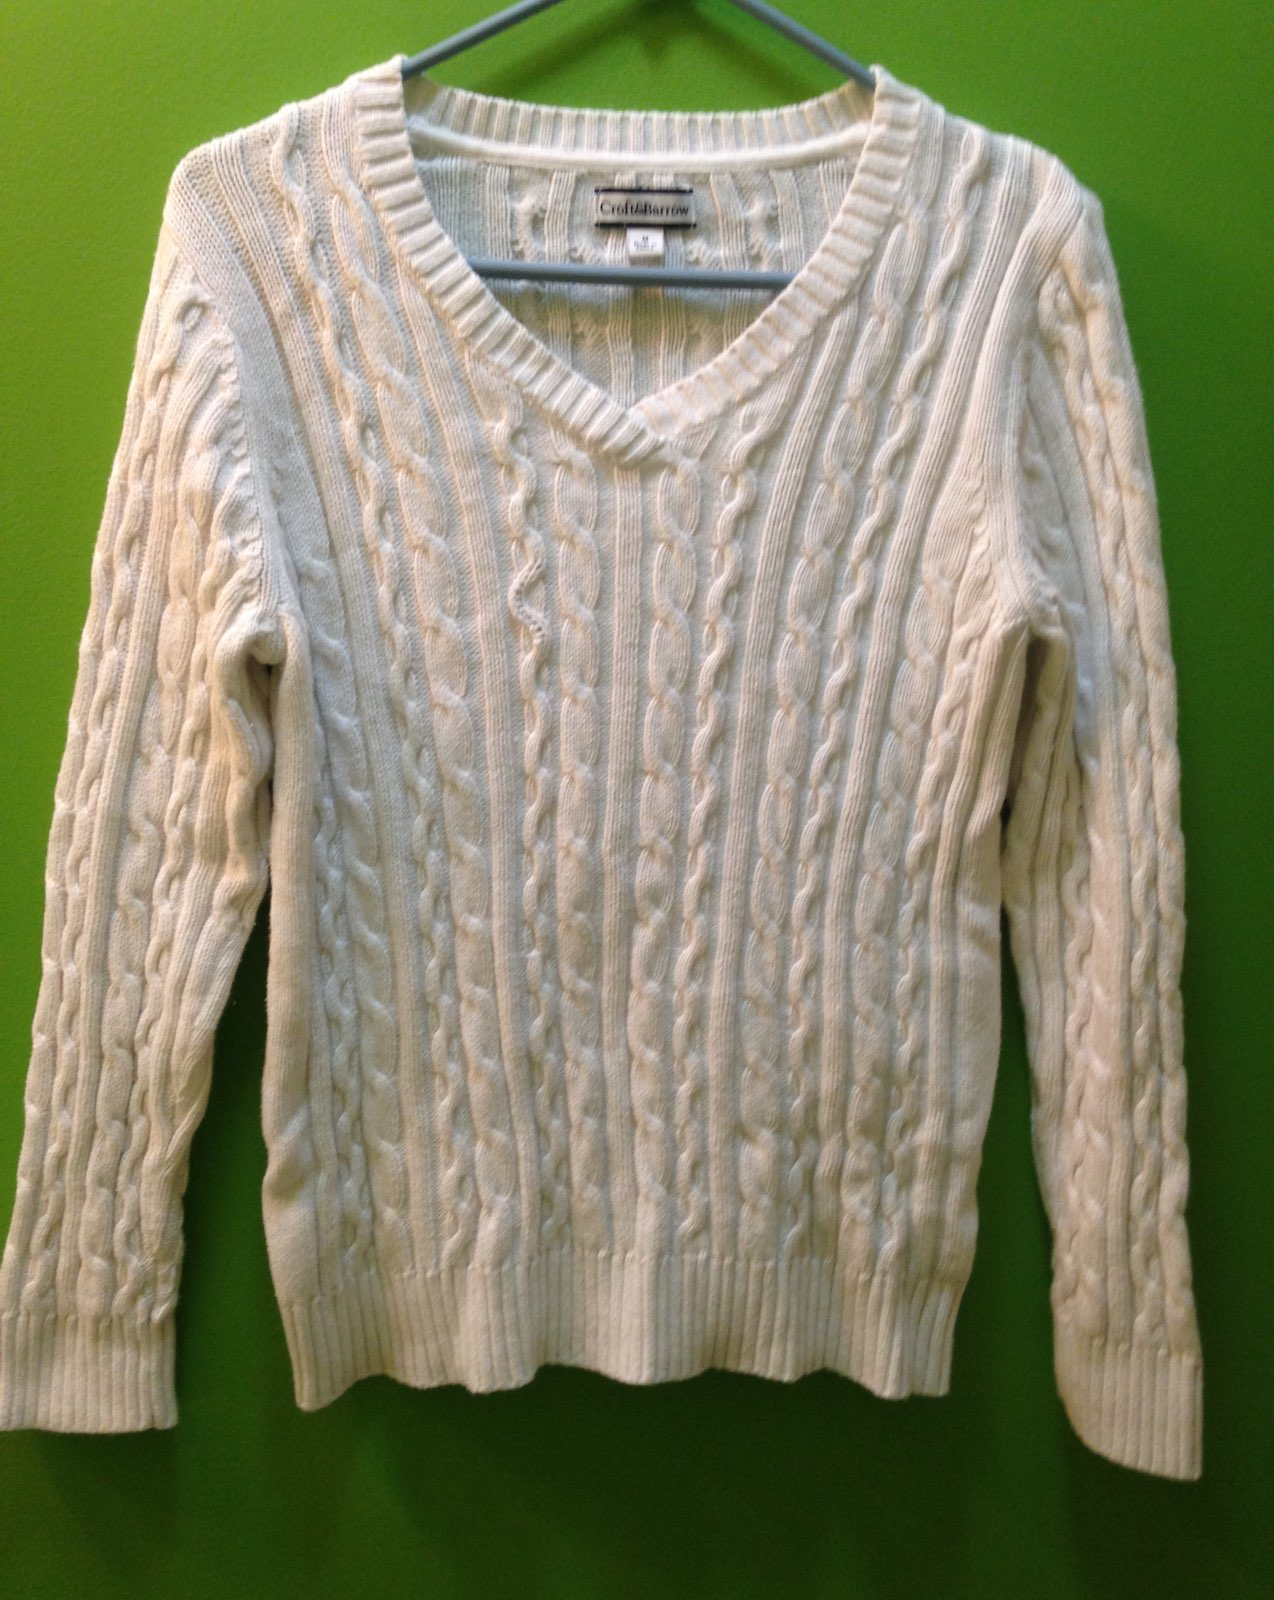 White Size Medium Cable Knit Sweater - Mercari: BUY & SELL THINGS ...